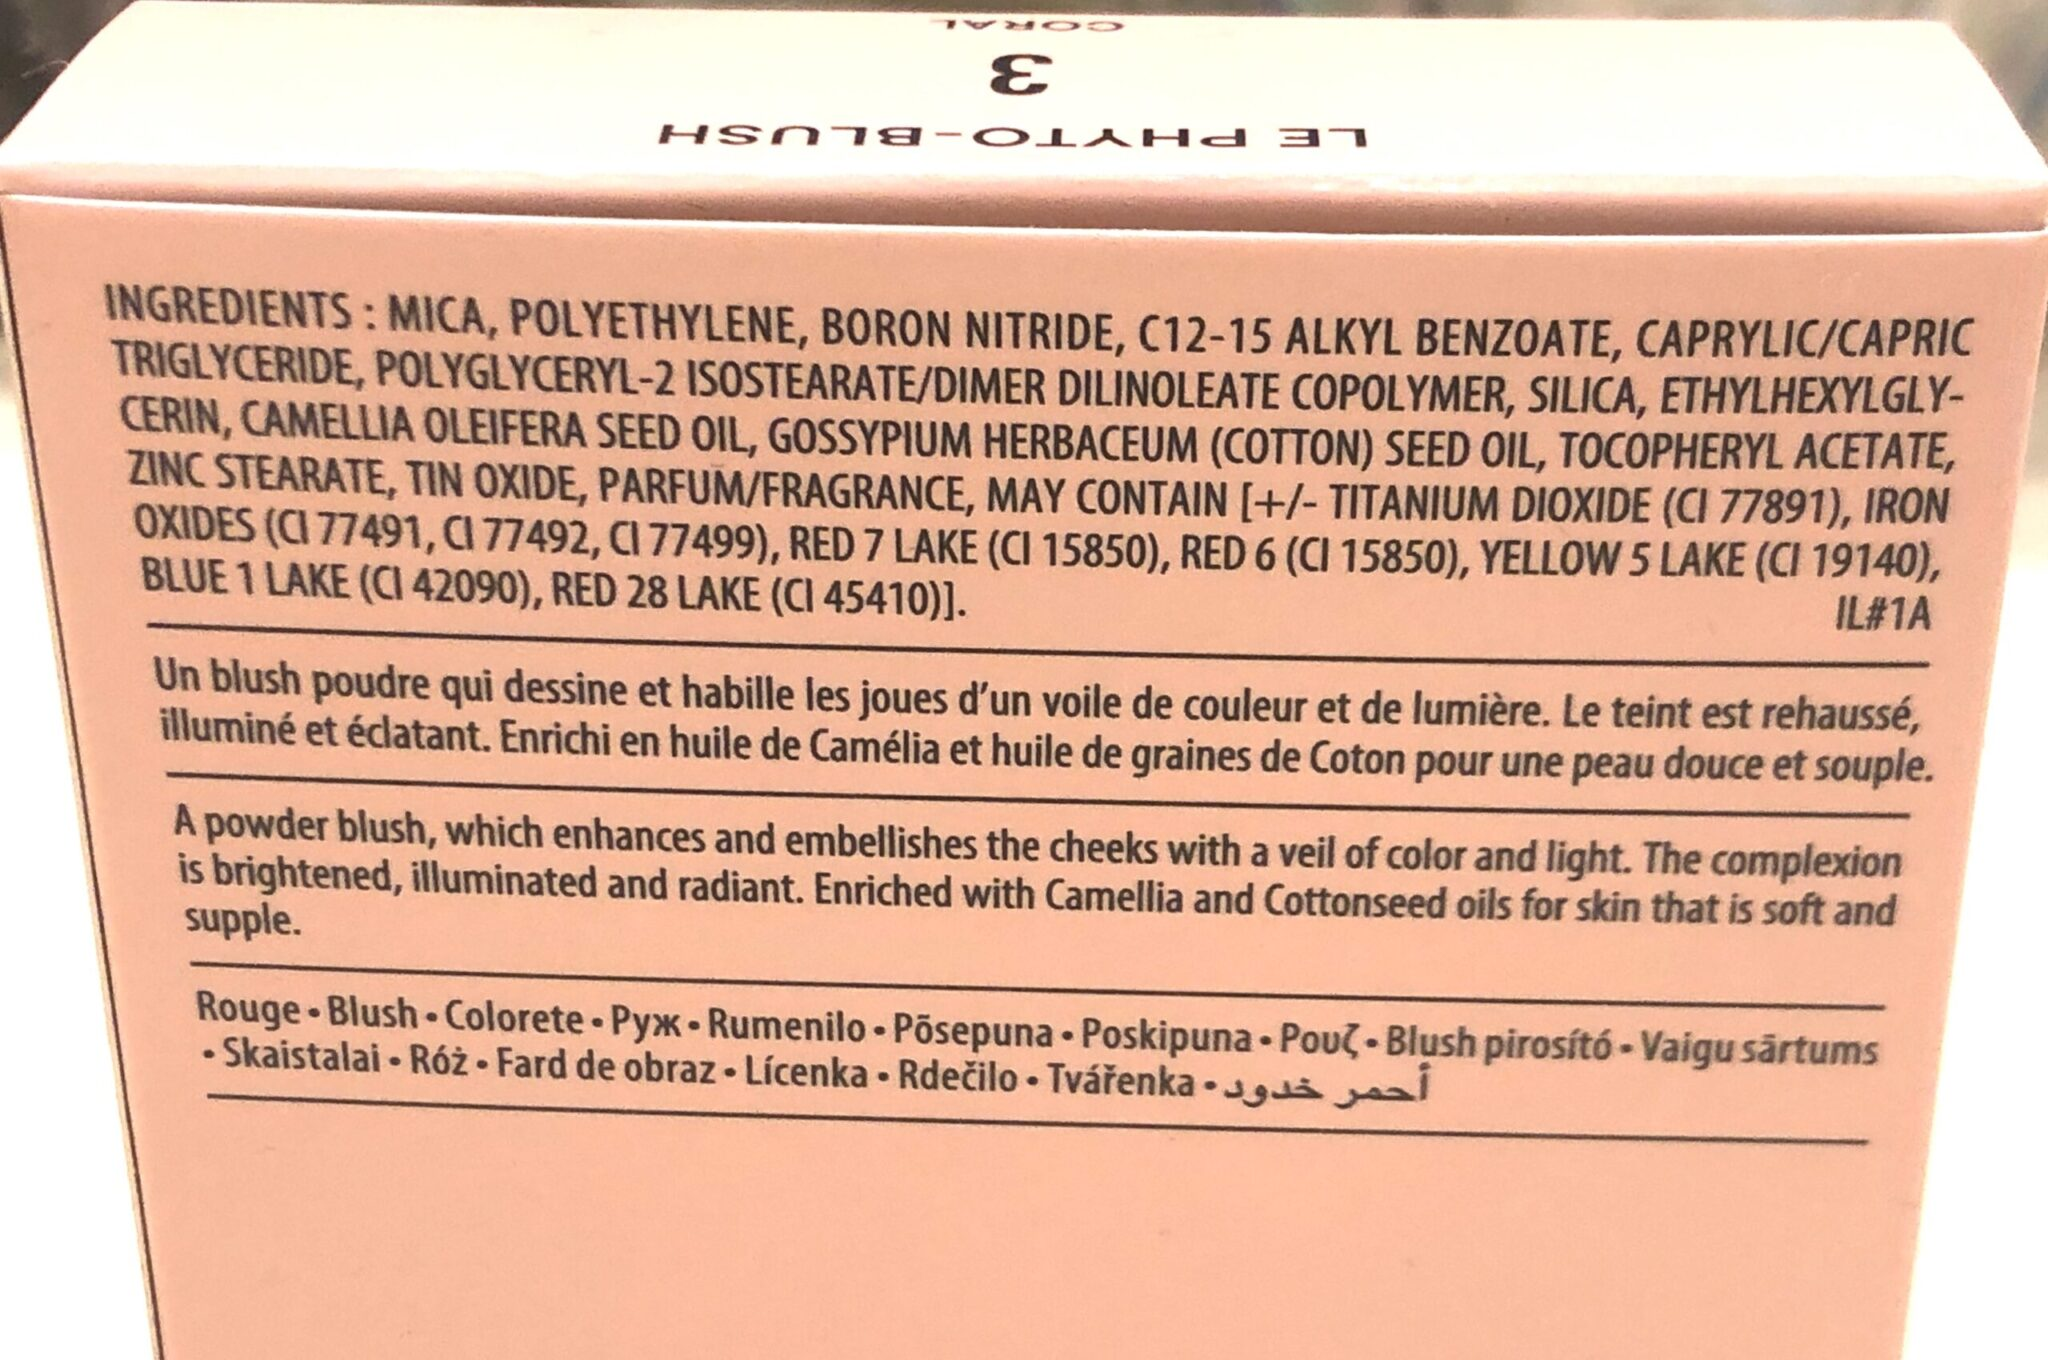 Le Phyto Blush Formula ingredients for #3 Coral